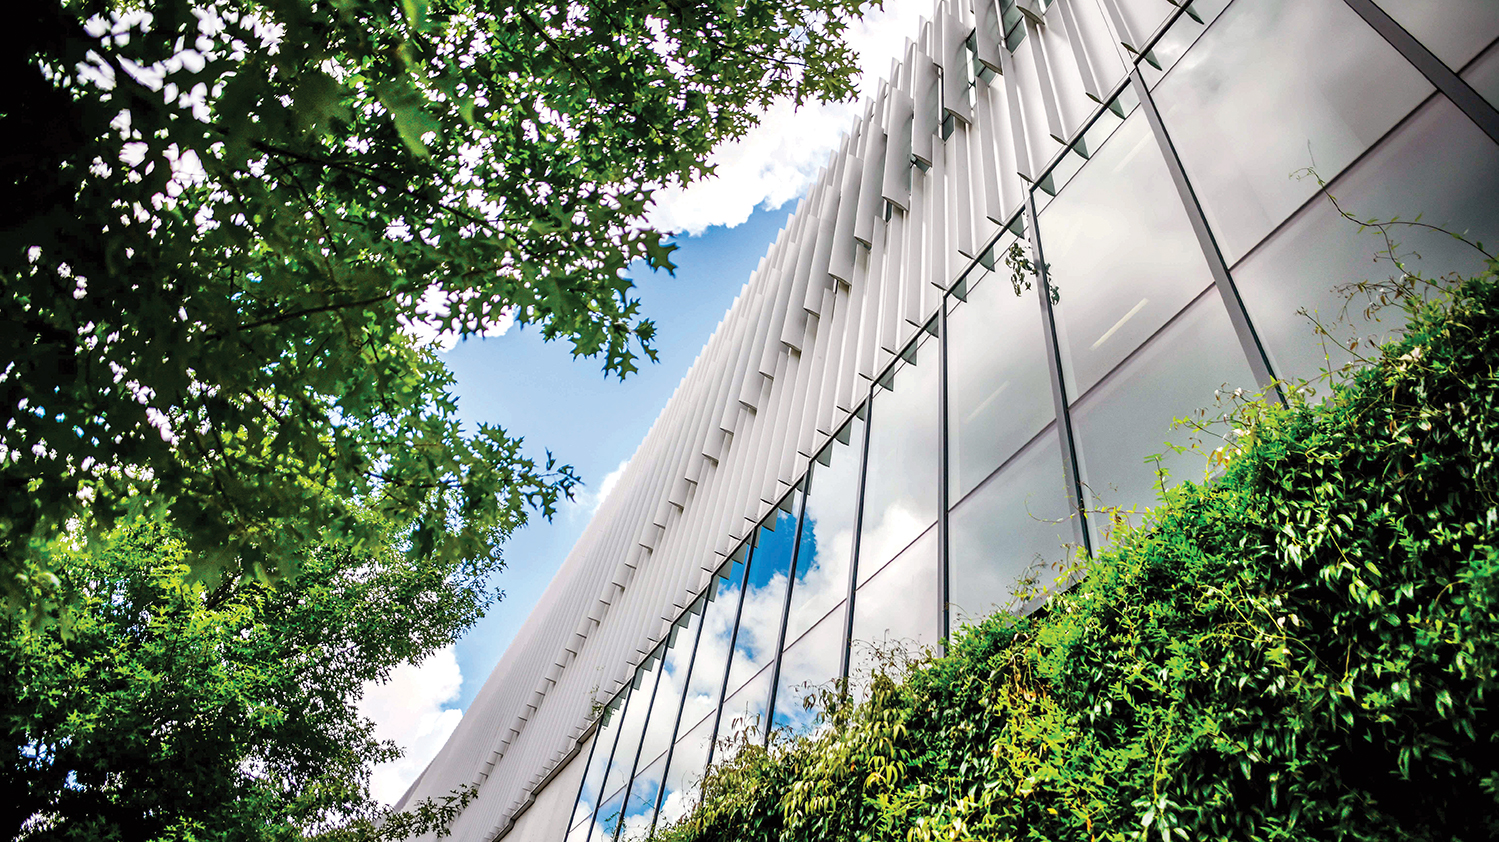 A view from below of Hunt Library on a sunny day.